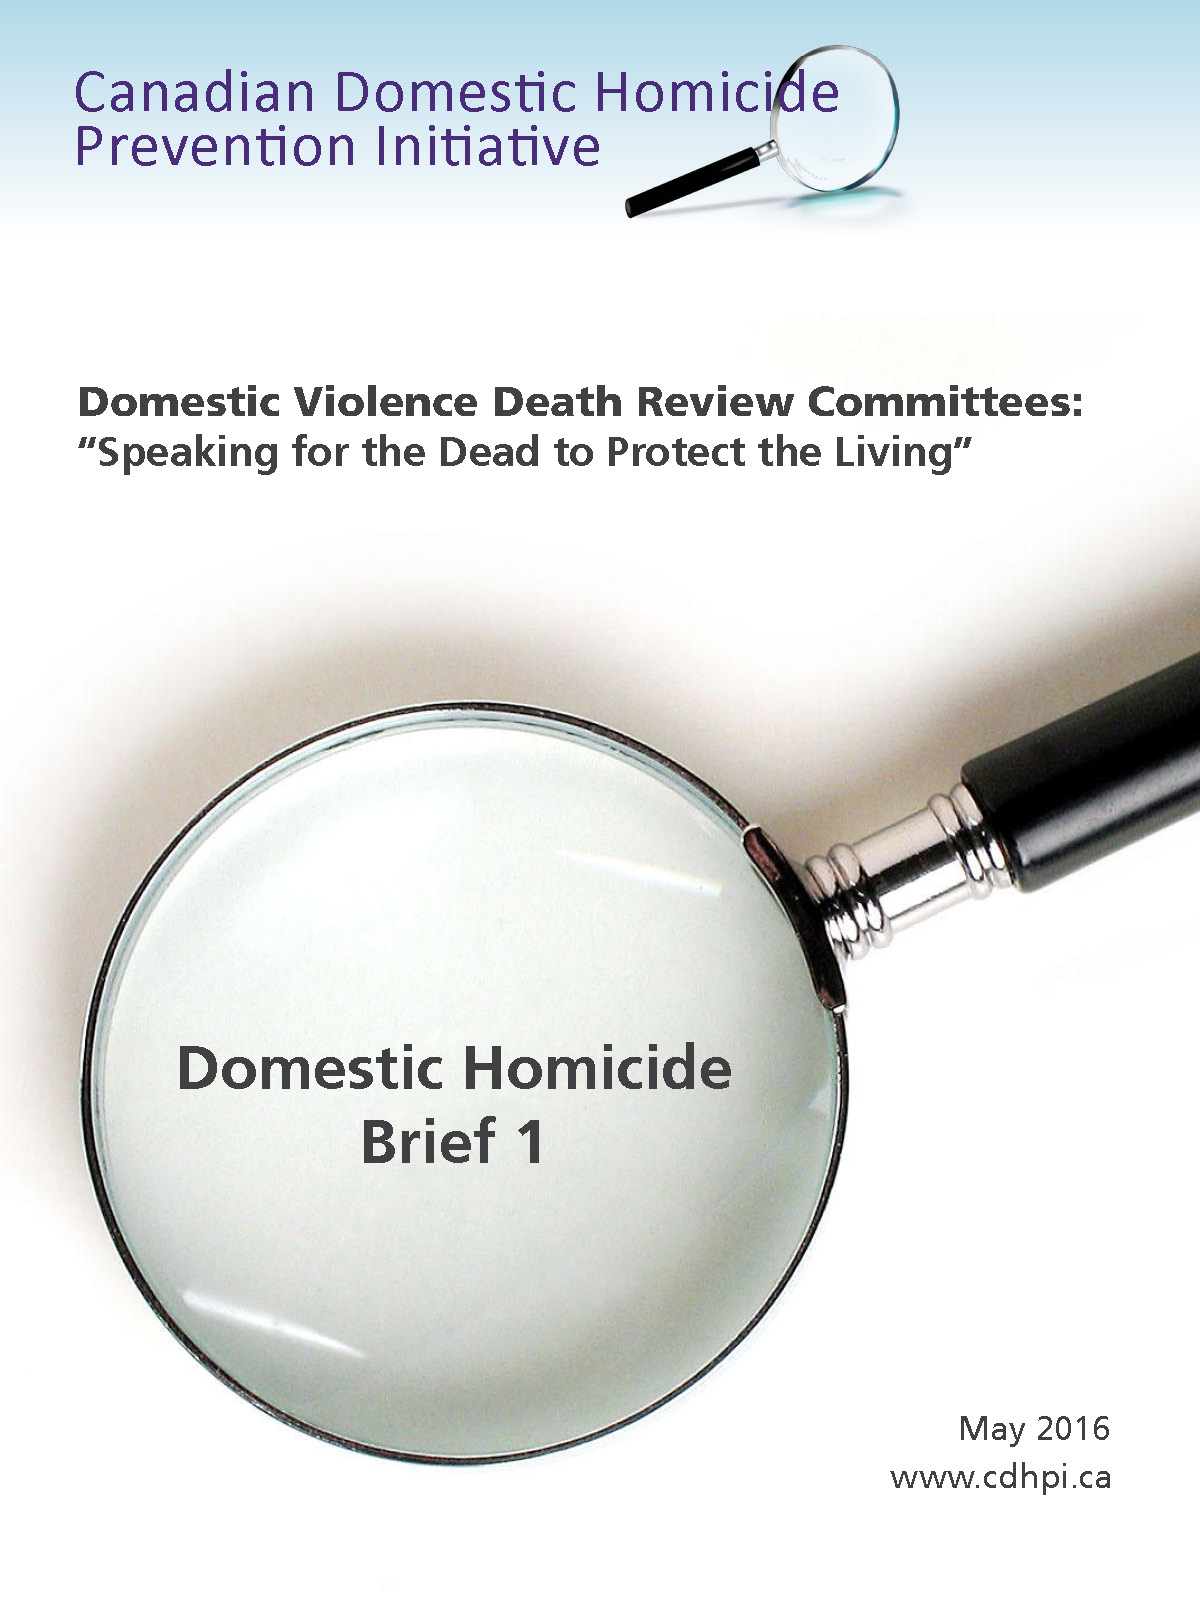 Domestic Violence Risk Assessment: Informing Safety Planning & Risk Management: Domestic Homicide Brief 1 with Magnifying glass image